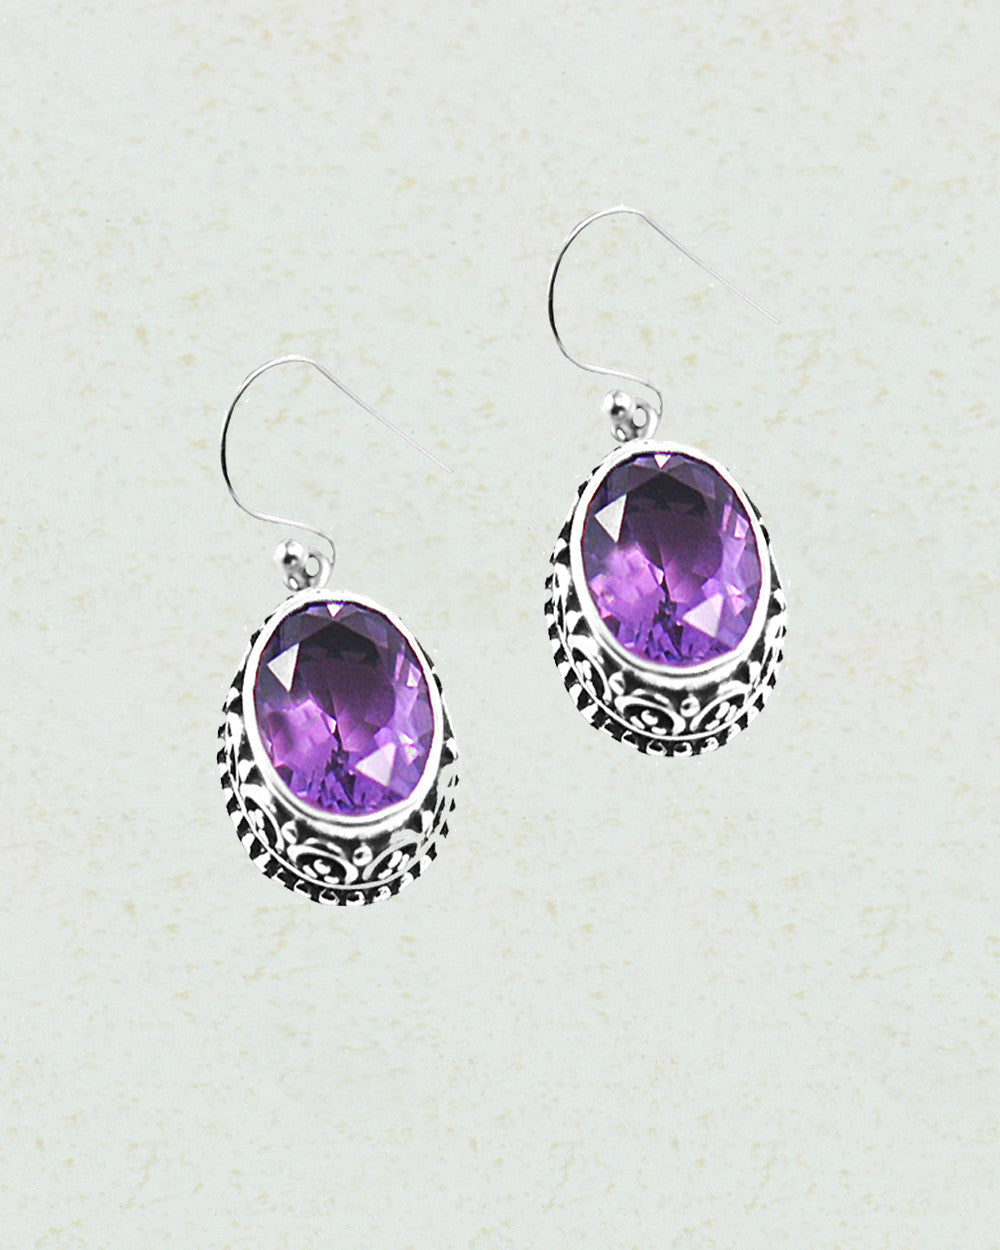 Cushion Cut Amethyst Filigree Earrings in Sterling Silver - Sivalya